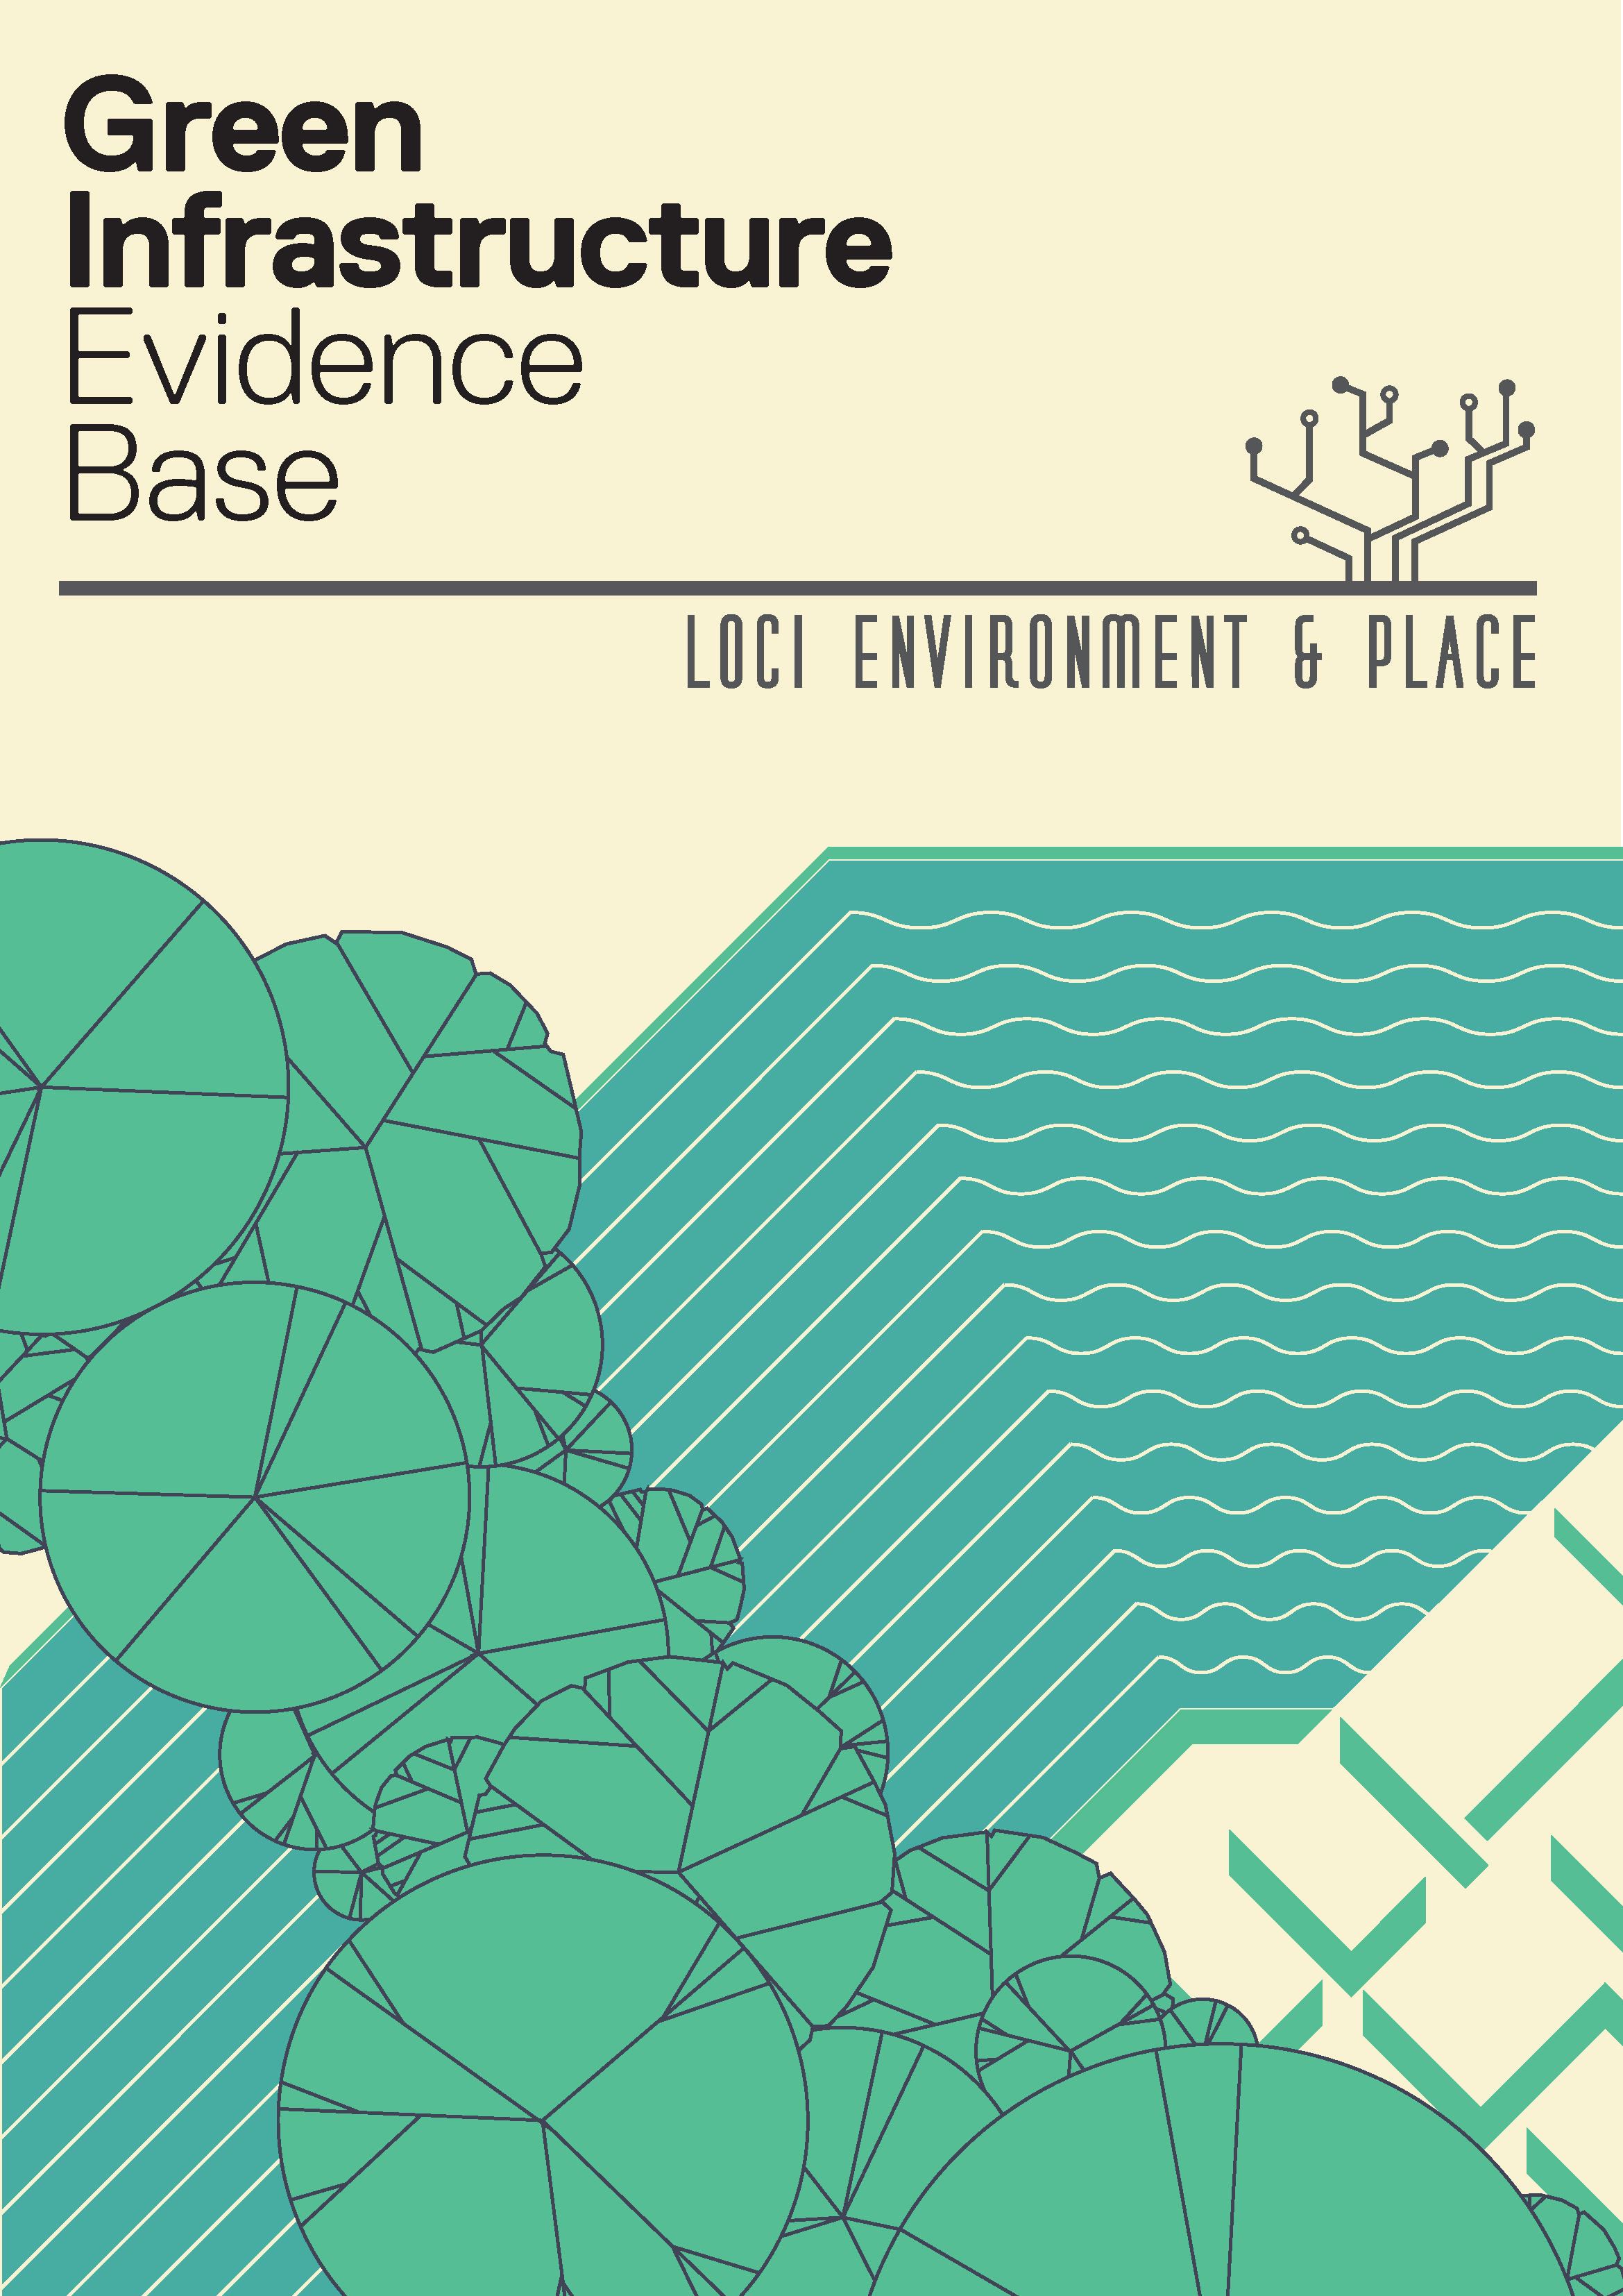 Designed for local government, feel free to use this evidence base for policy and project design.